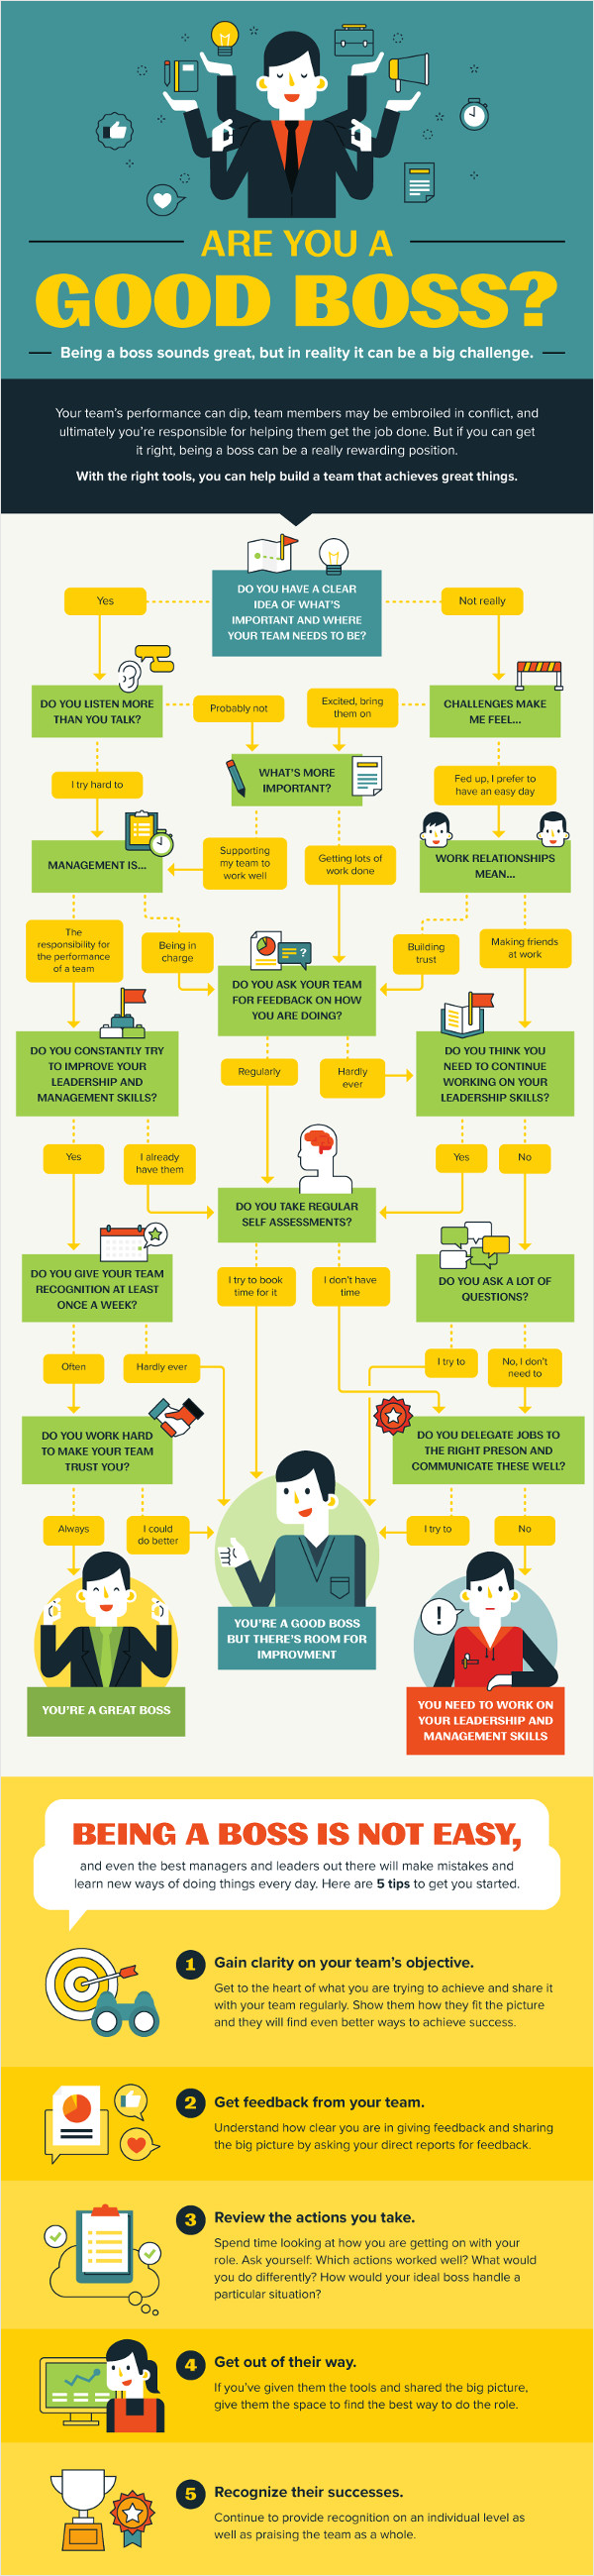 21-Creative-Flowchart-Examples-for-Making-Important-Life-Decisions-Make-a-Quiz